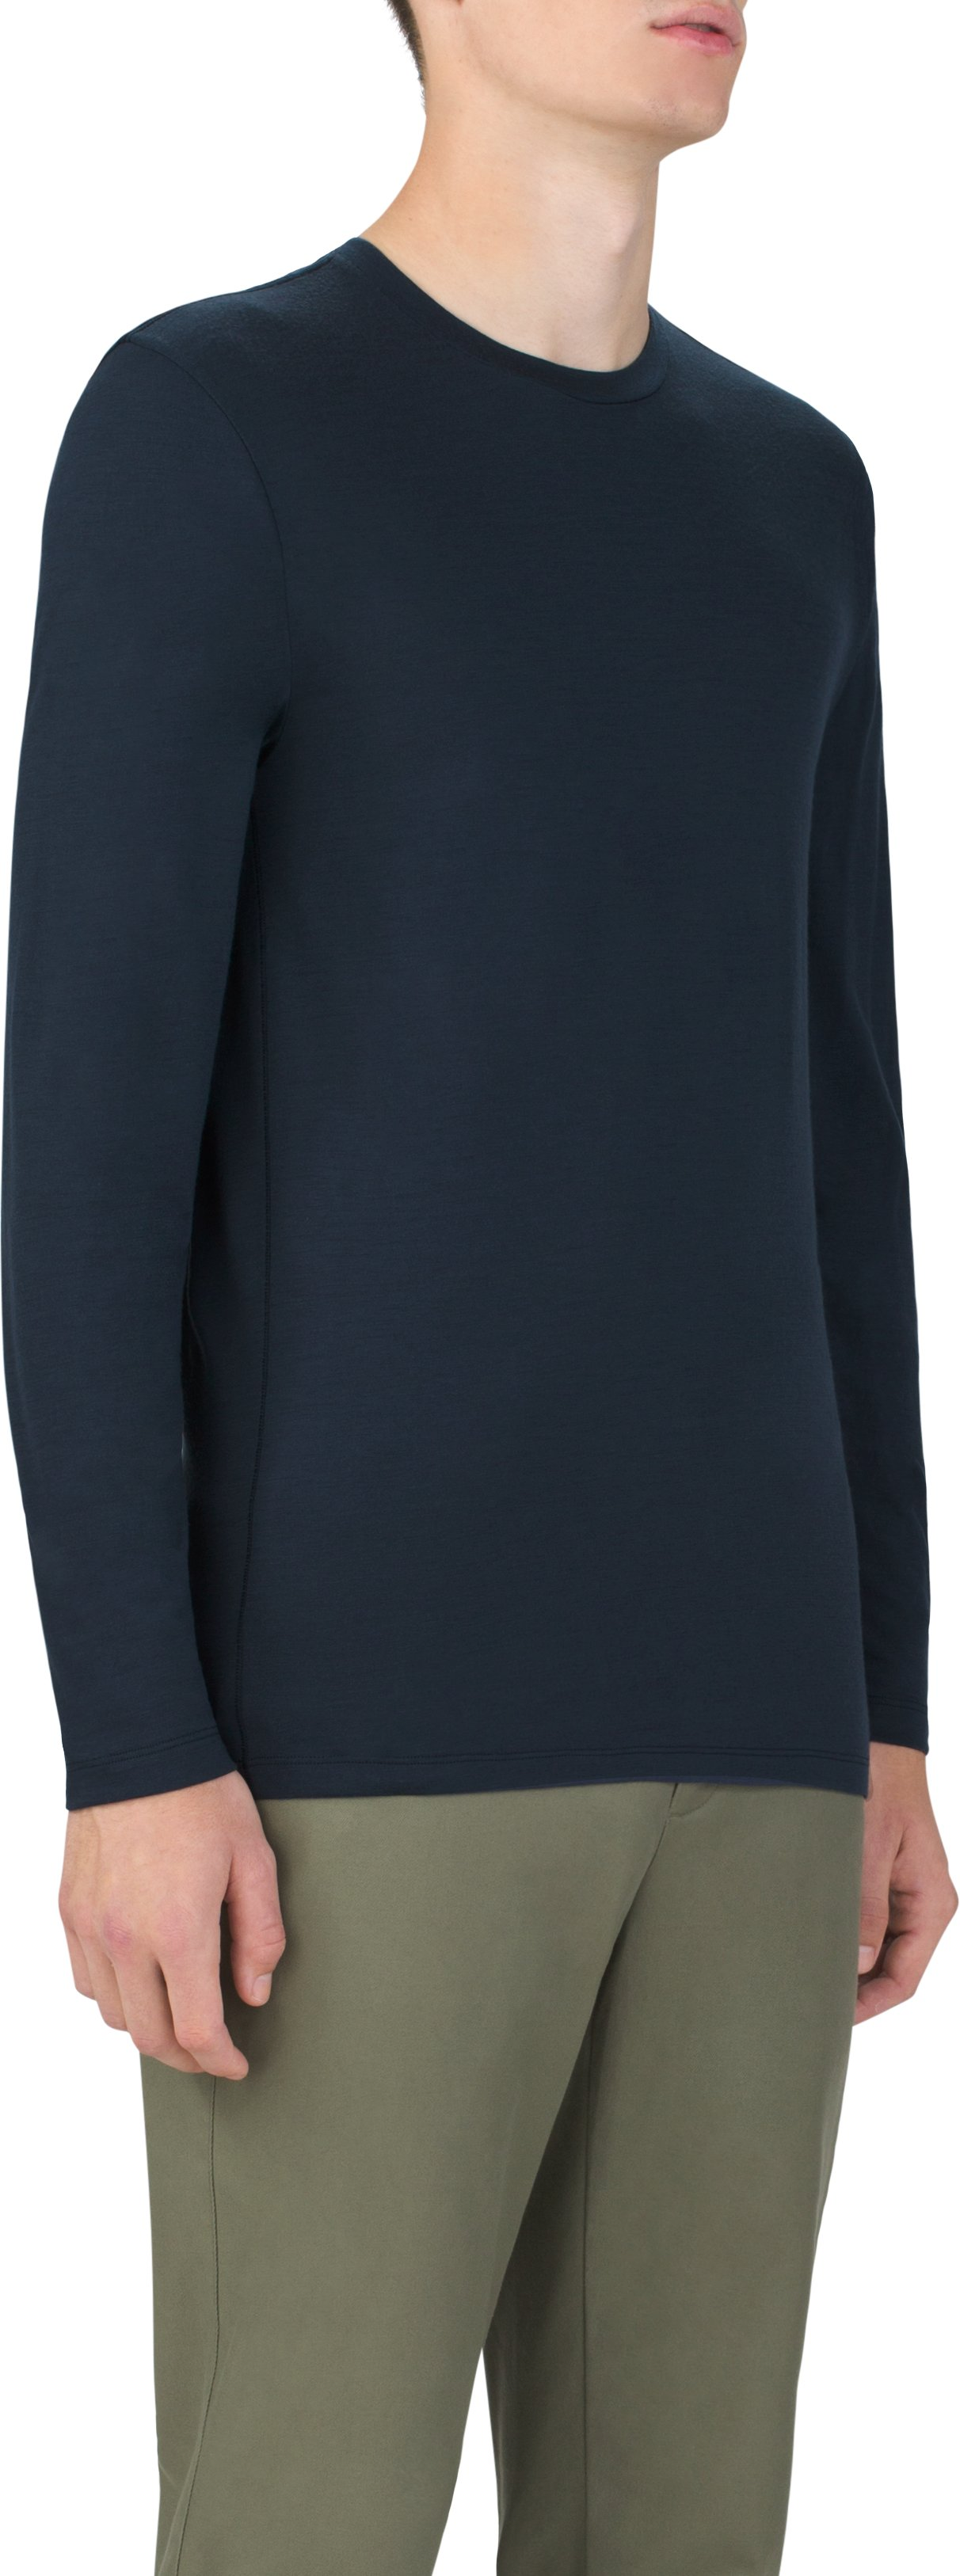 Men's Prime Long Sleeve Crew, Navy, undefined